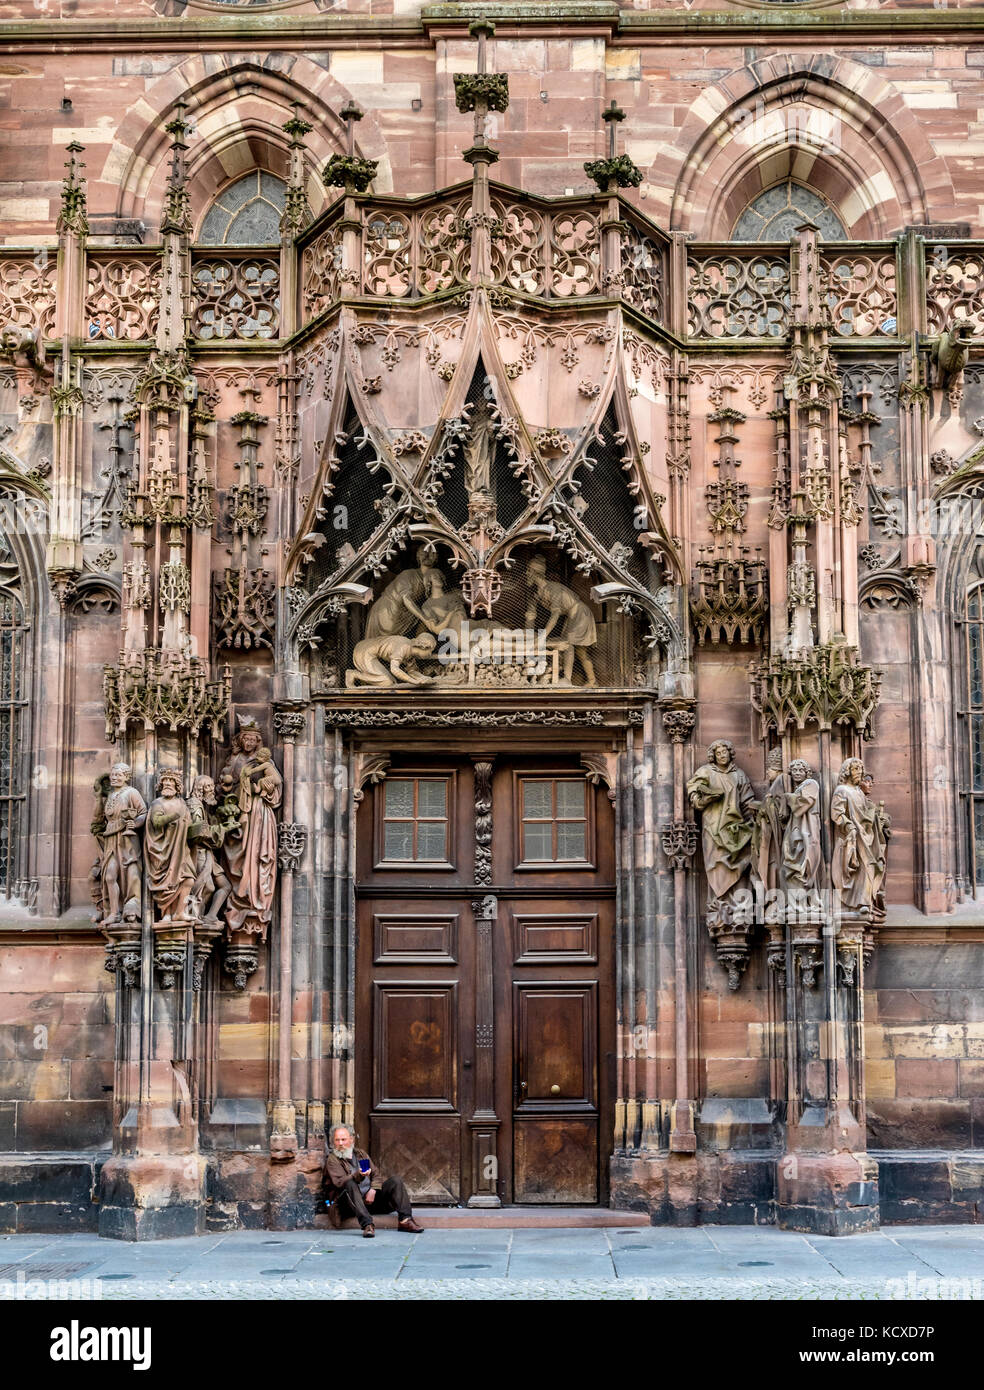 North door of Strasbourg Cathedral with beggar sitting on the steps - Stock Image & Sitting Beggar Stock Photos u0026 Sitting Beggar Stock Images - Alamy pezcame.com